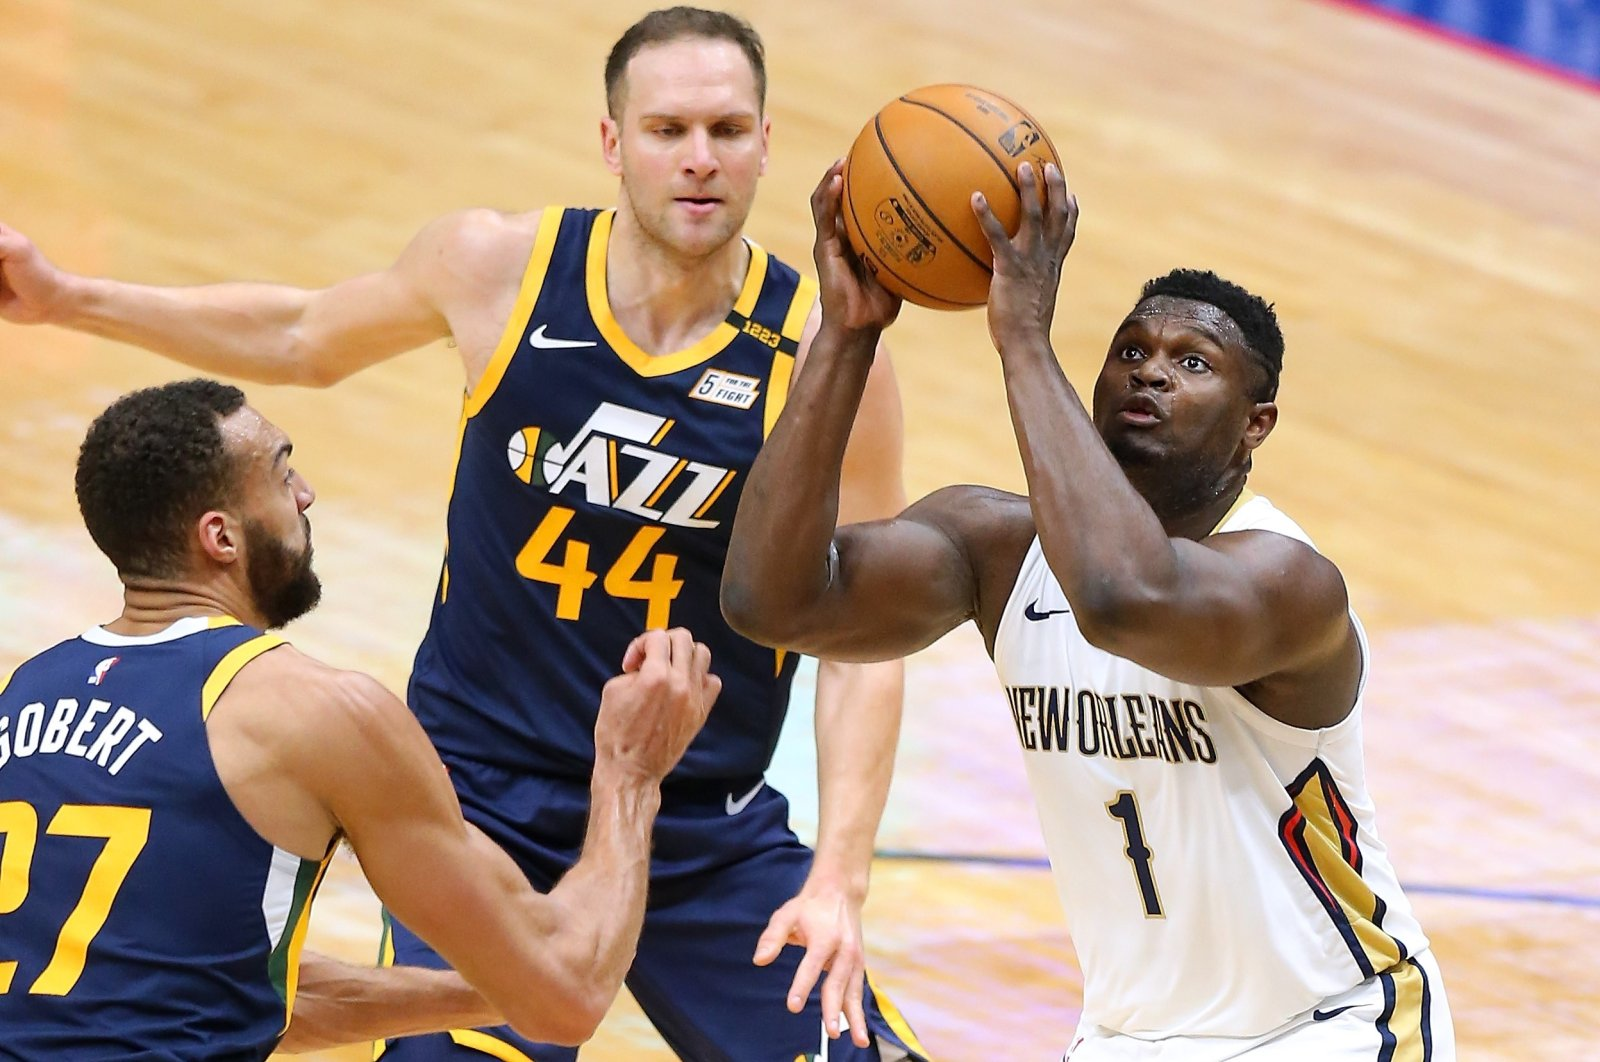 New Orleans Pelicans' Zion Williamson (R) looks to shoot against Utah Jazz'sRudy Gobert (L) and Bojan Bogdanovic (C) during an NBA game at the Smoothie King Center, New Orleans, Louisiana, March 01, 2021. (AFP Photo)